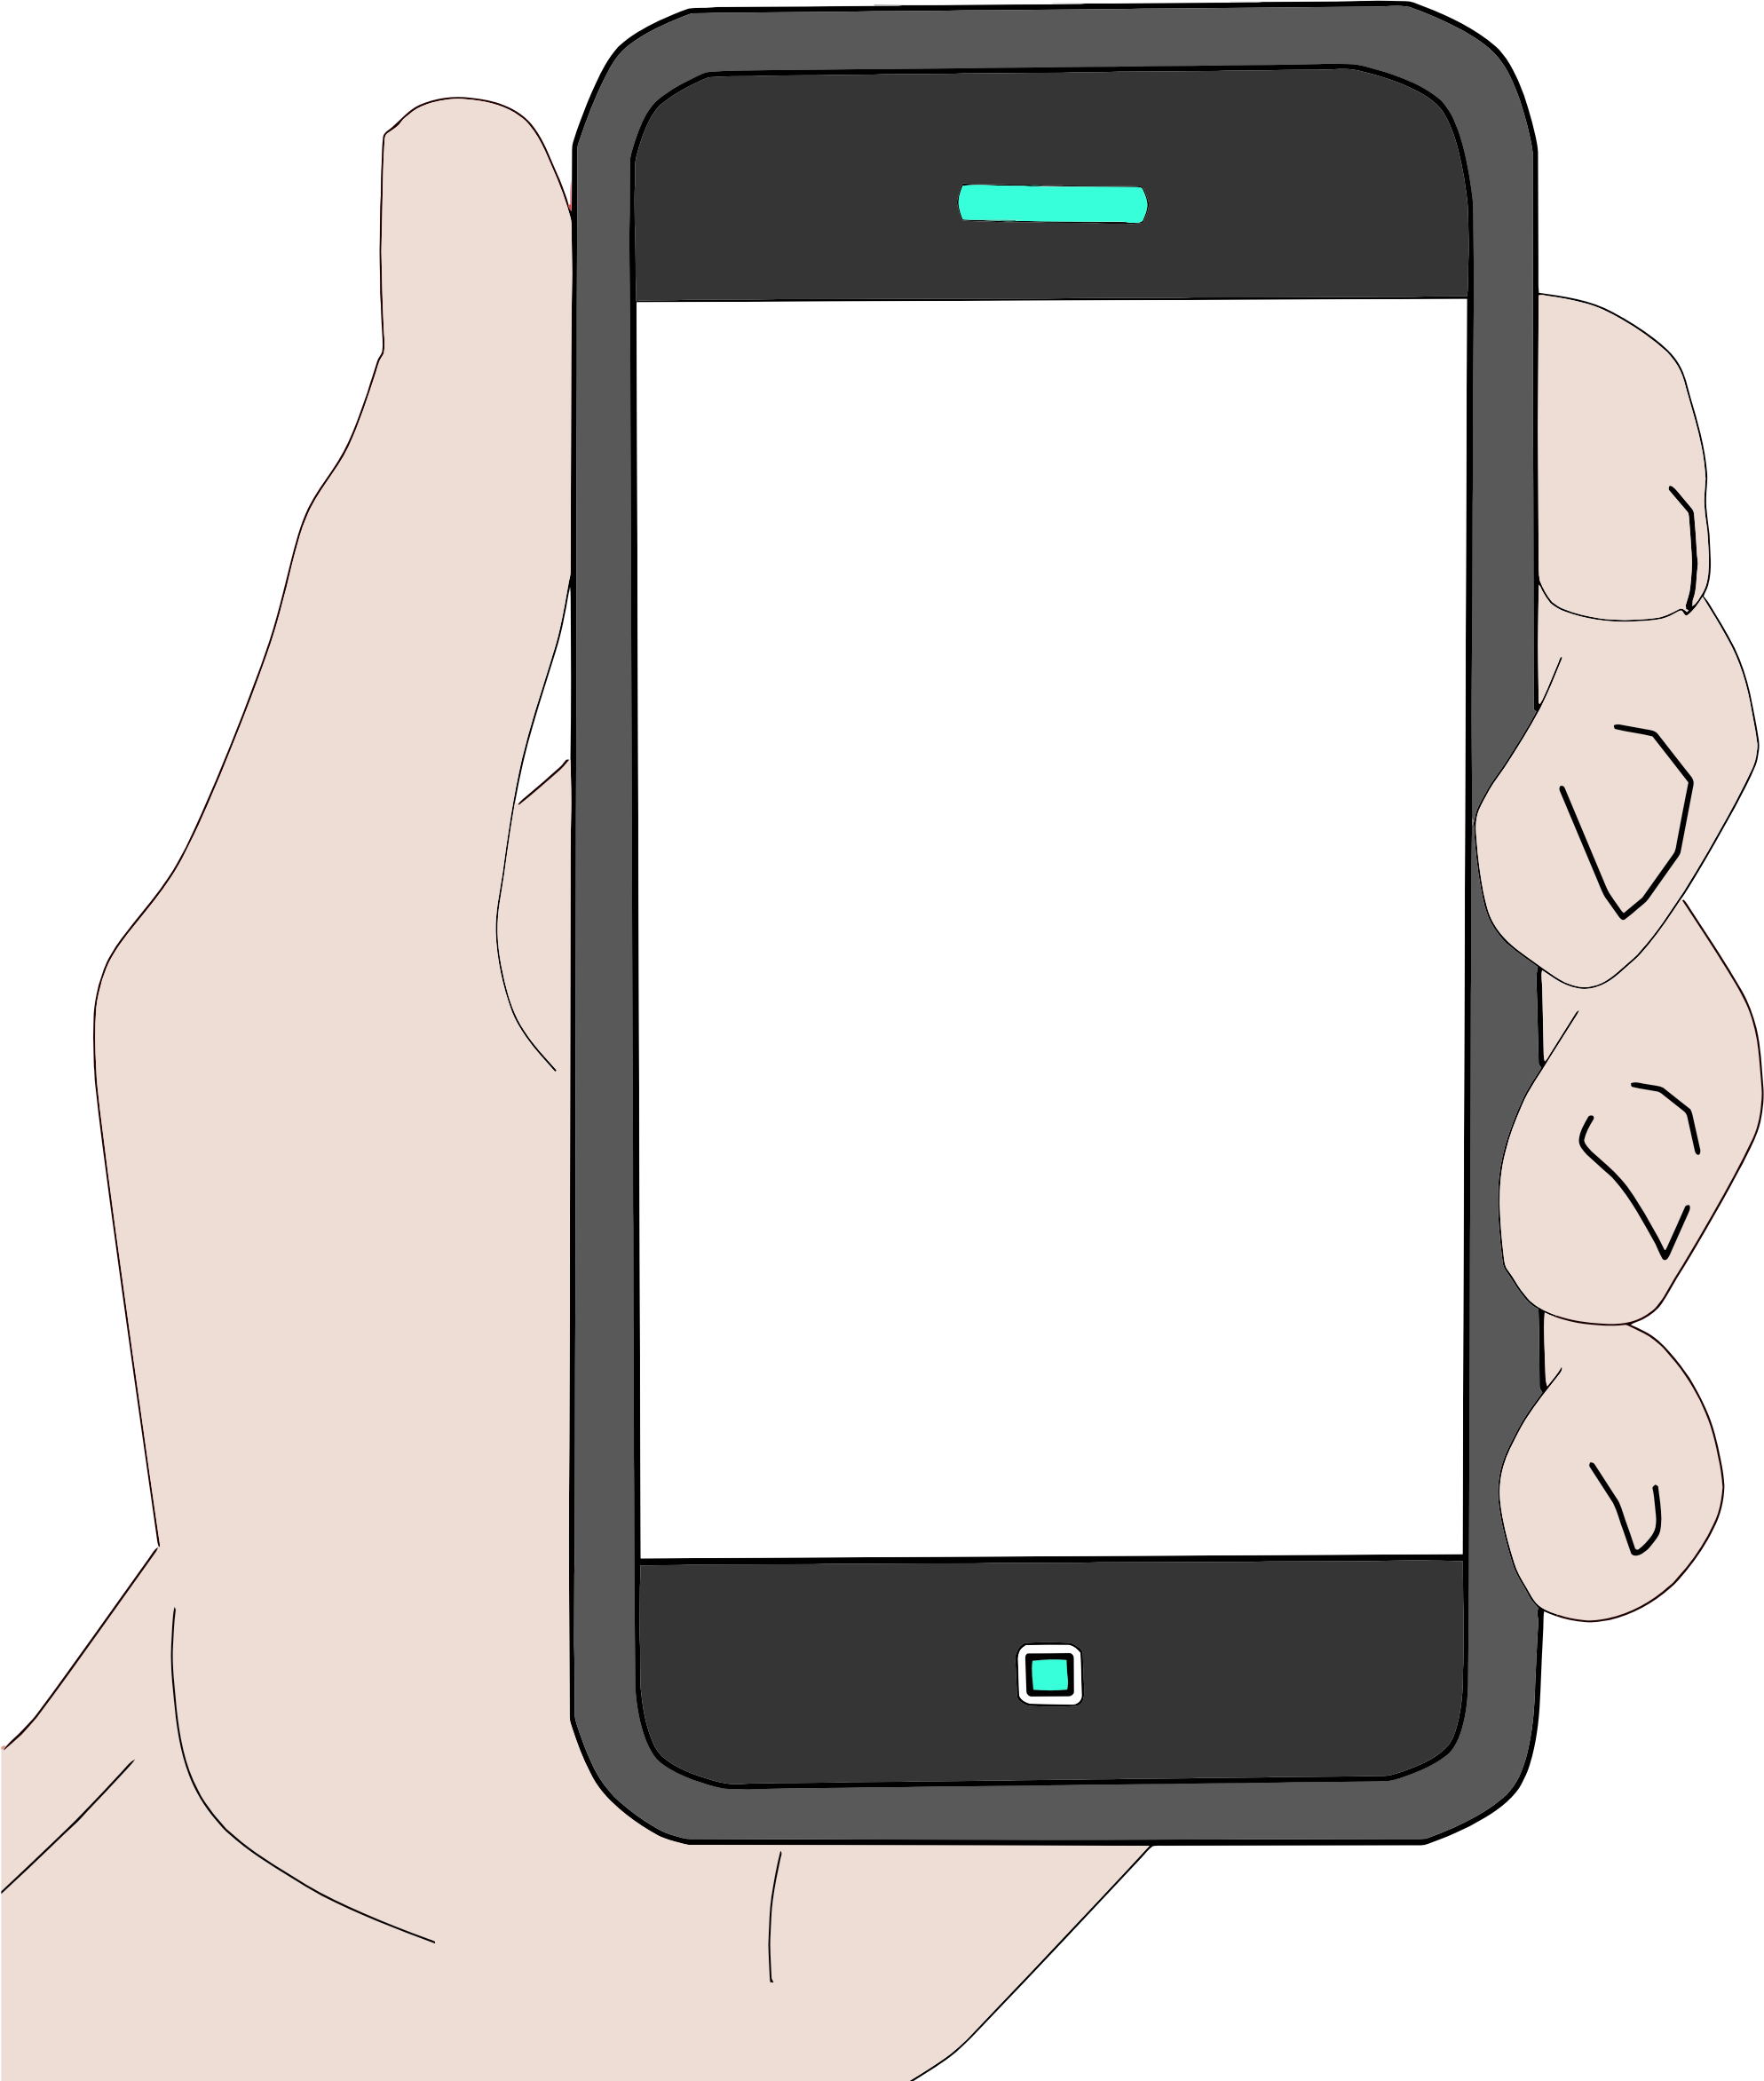 Hand holding cellphone png. Cell phone icons free